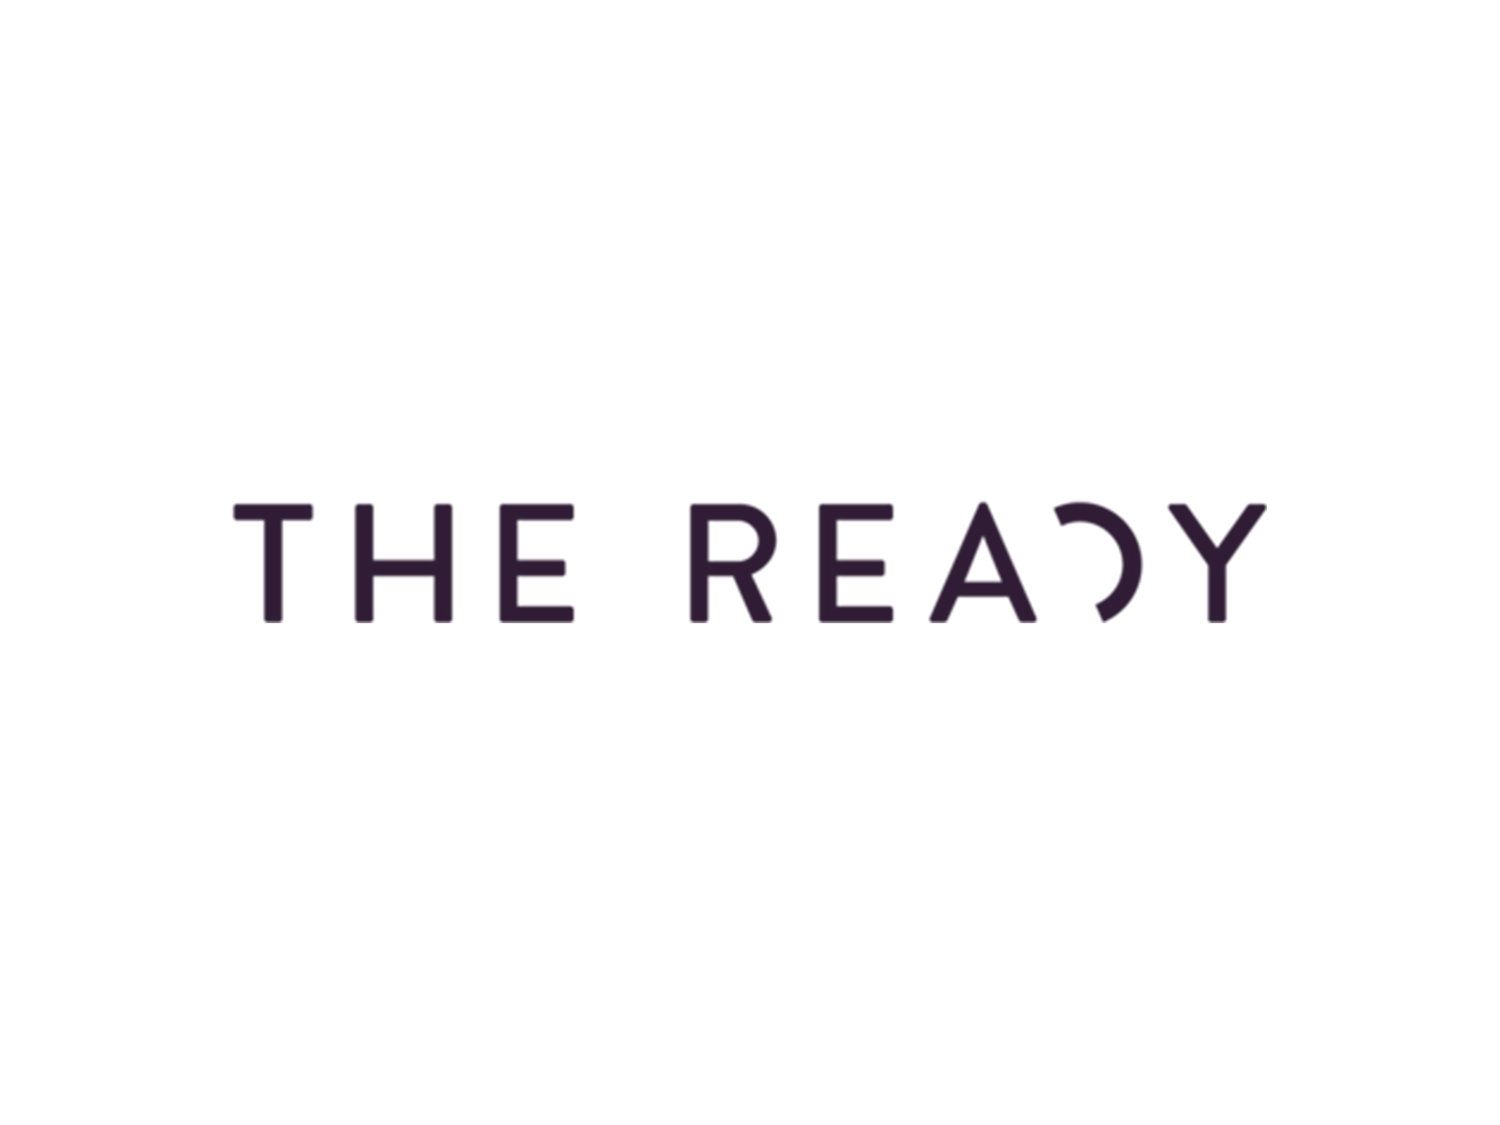 the ready